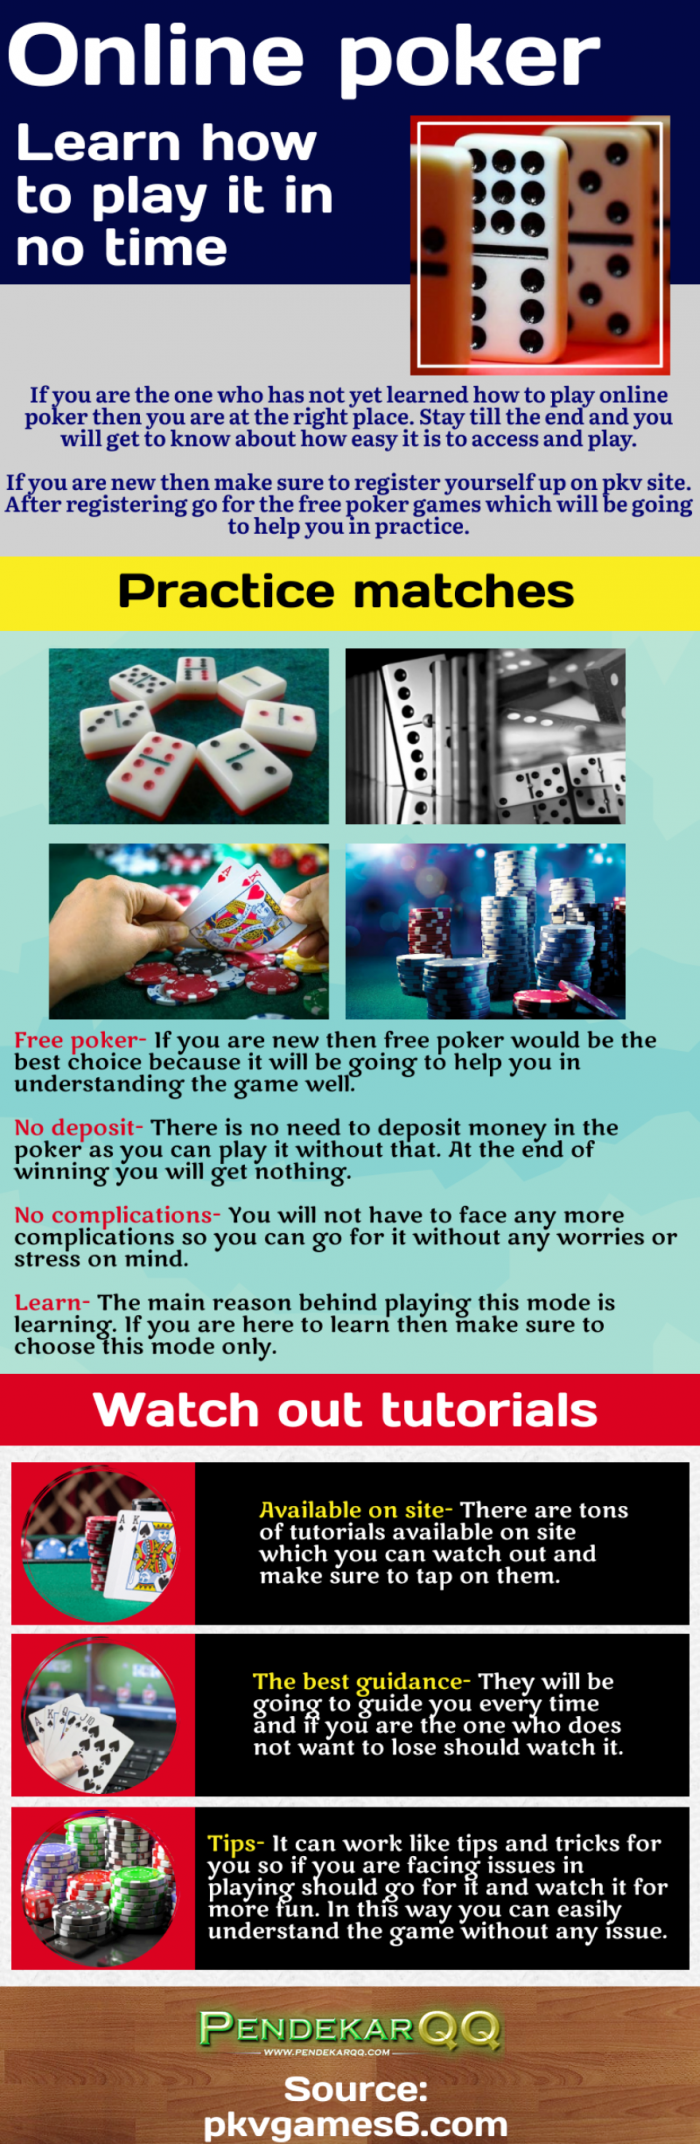 Concentrate on the poker game and its technique